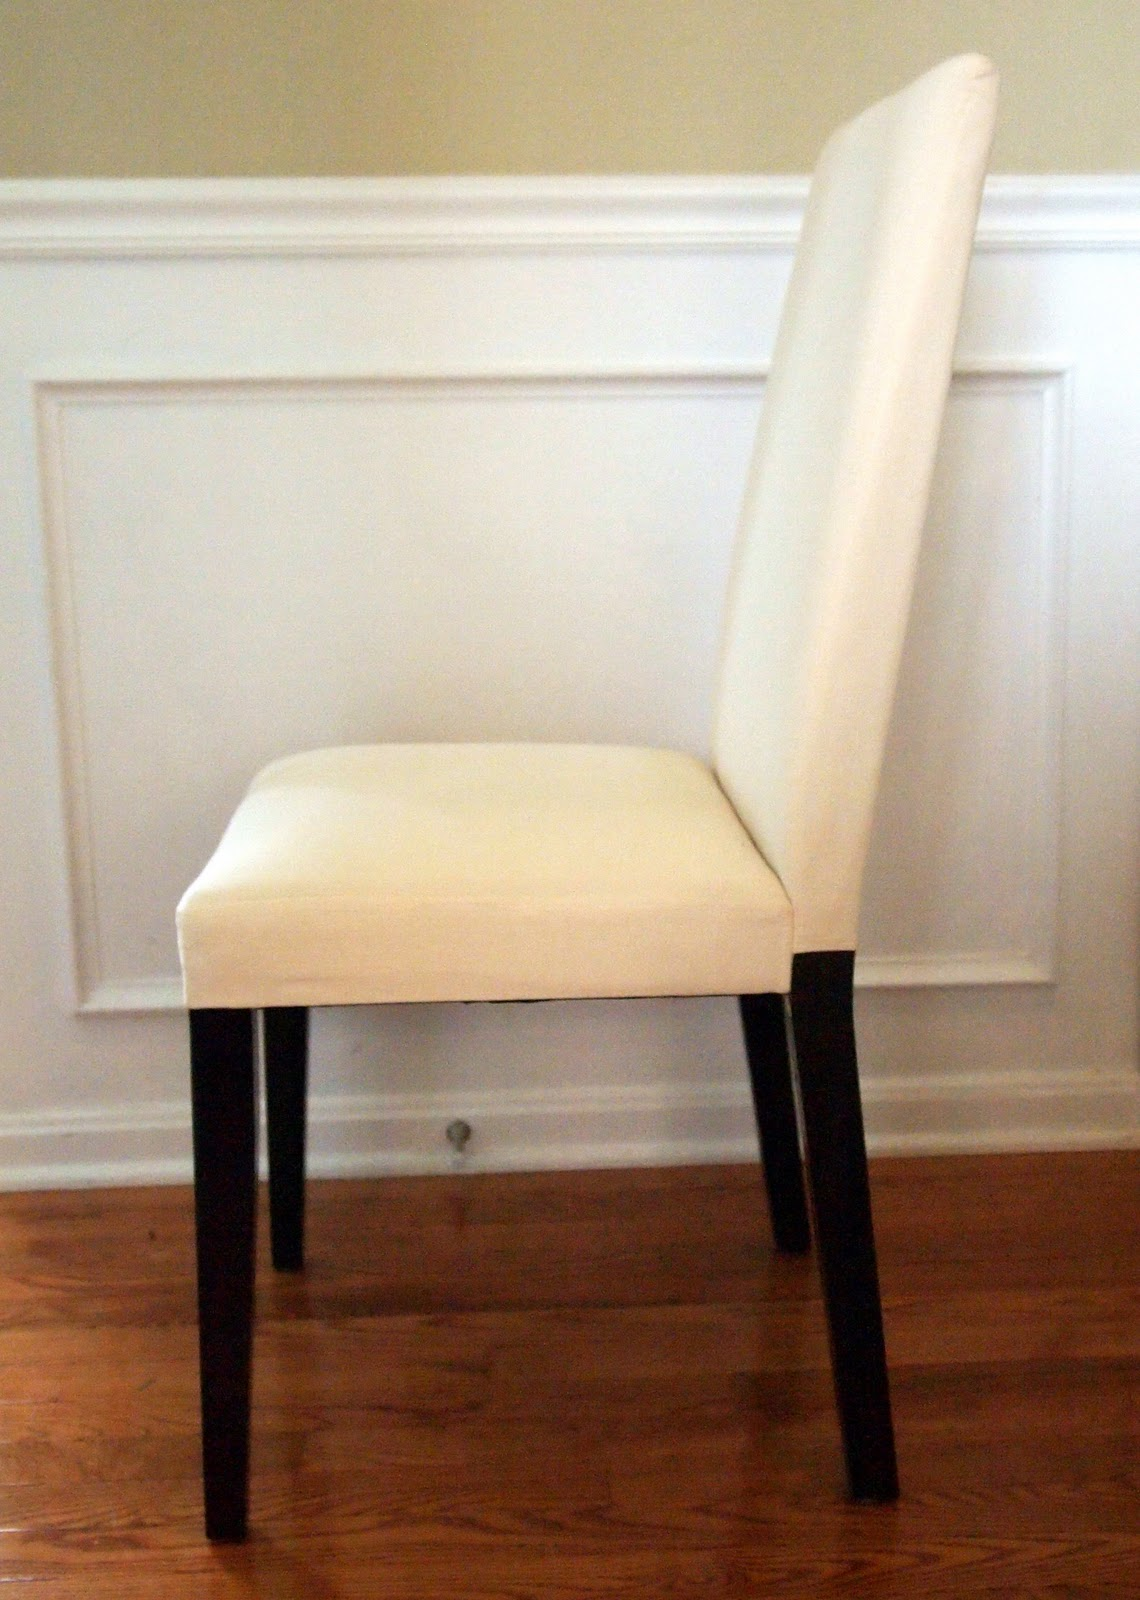 my morning slip cover chair project using remnant fabric no sewing needed